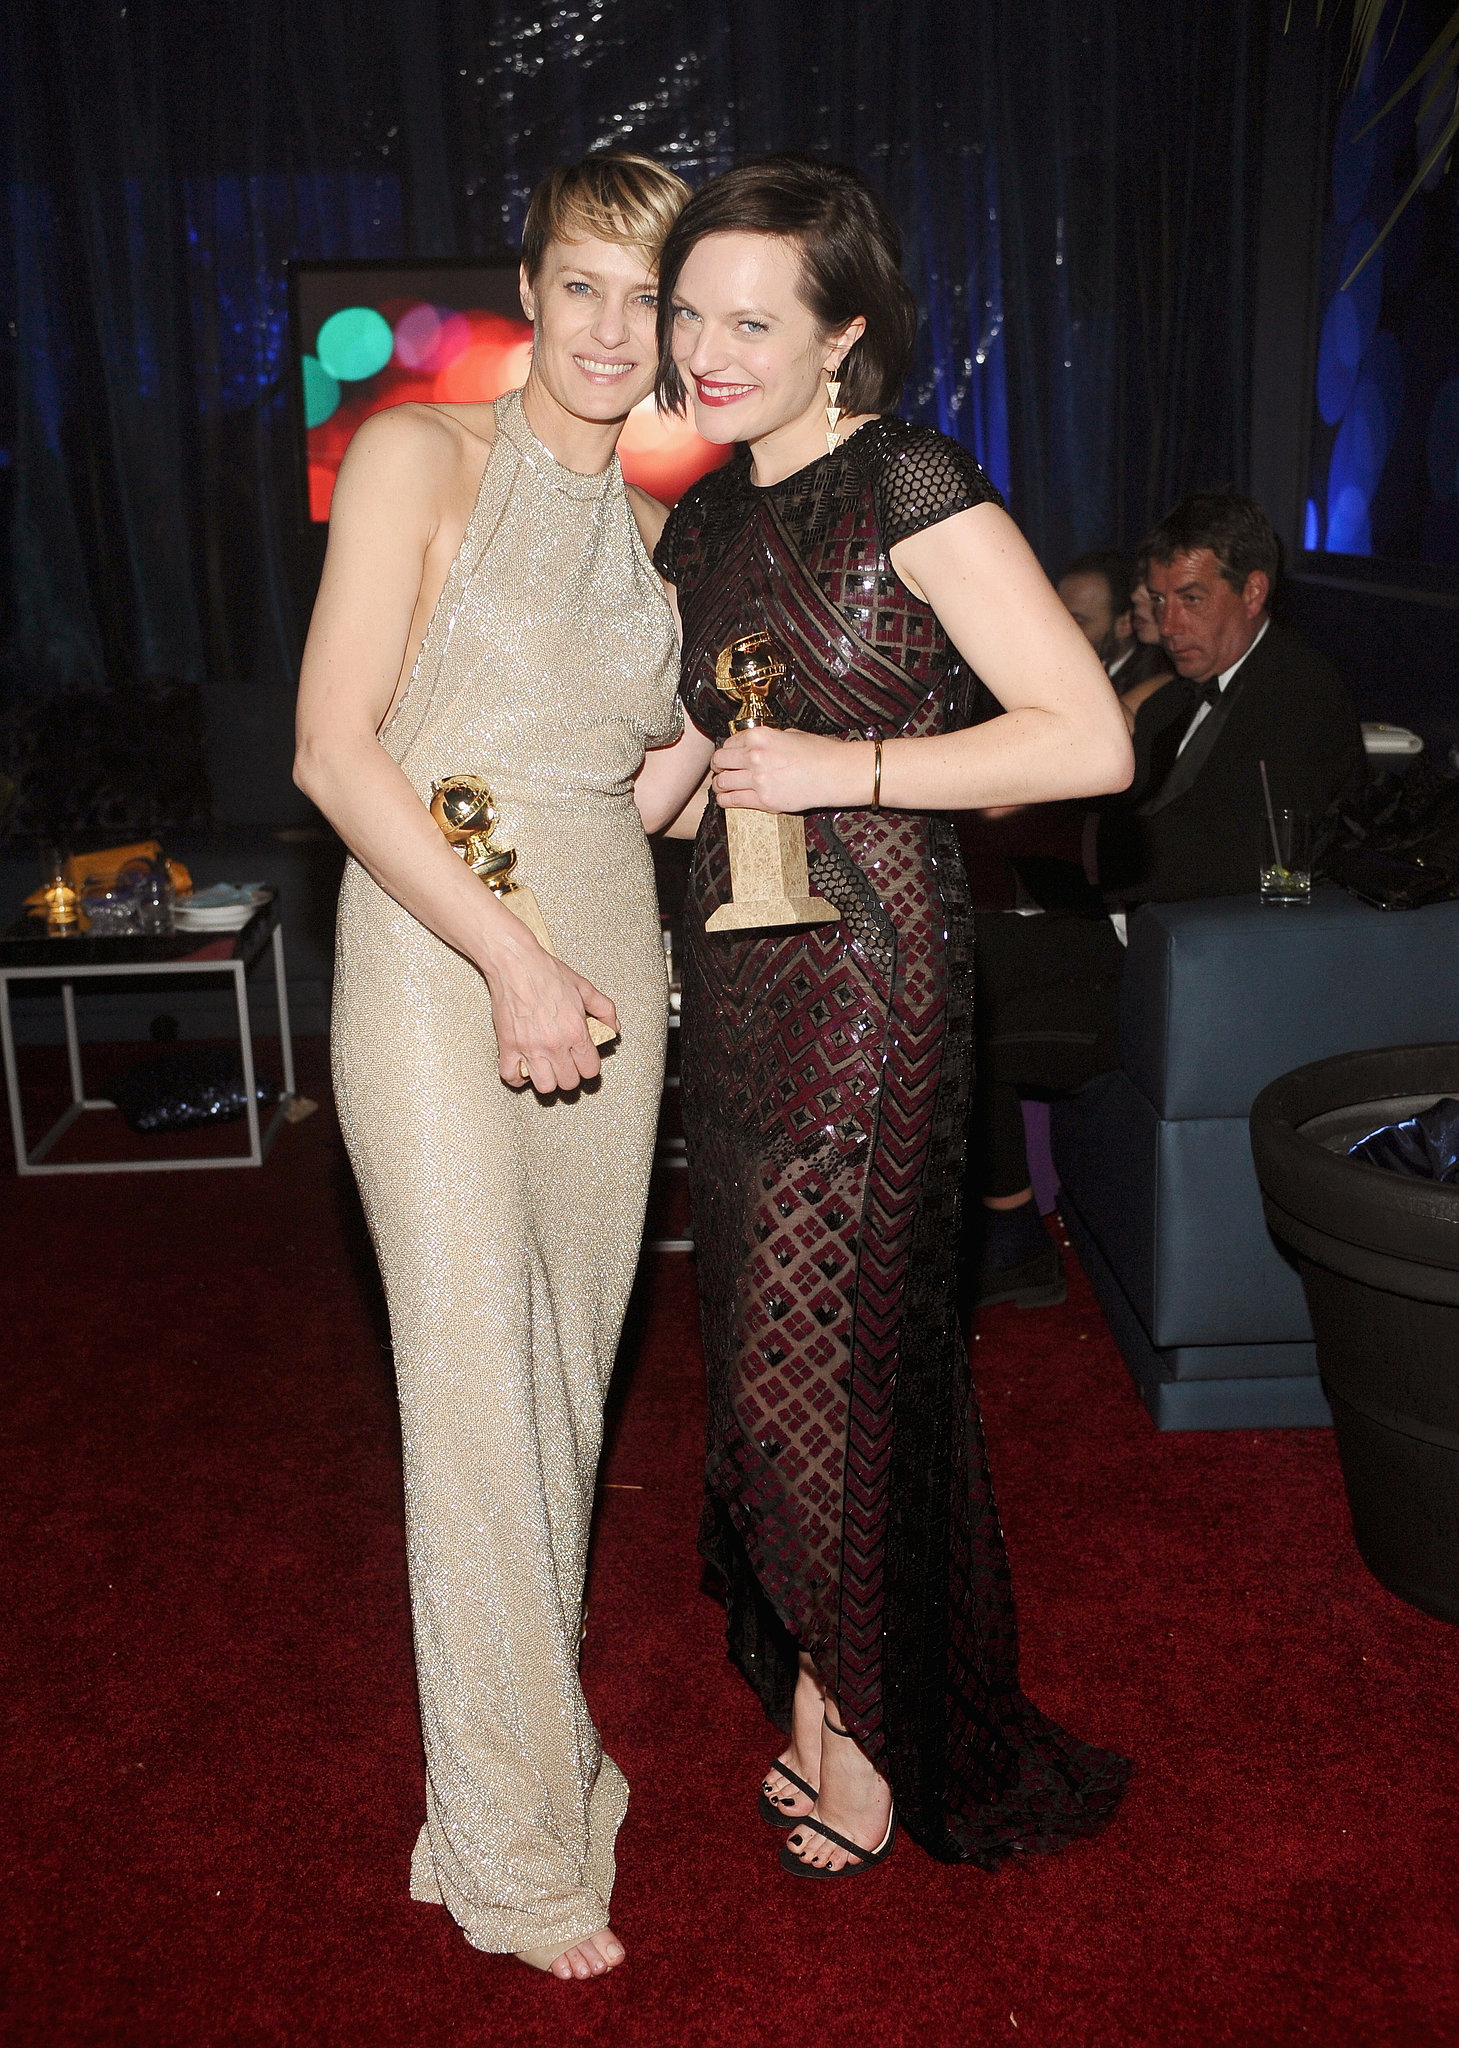 Robin Wright and Elisabeth Moss flaunted their new awards.